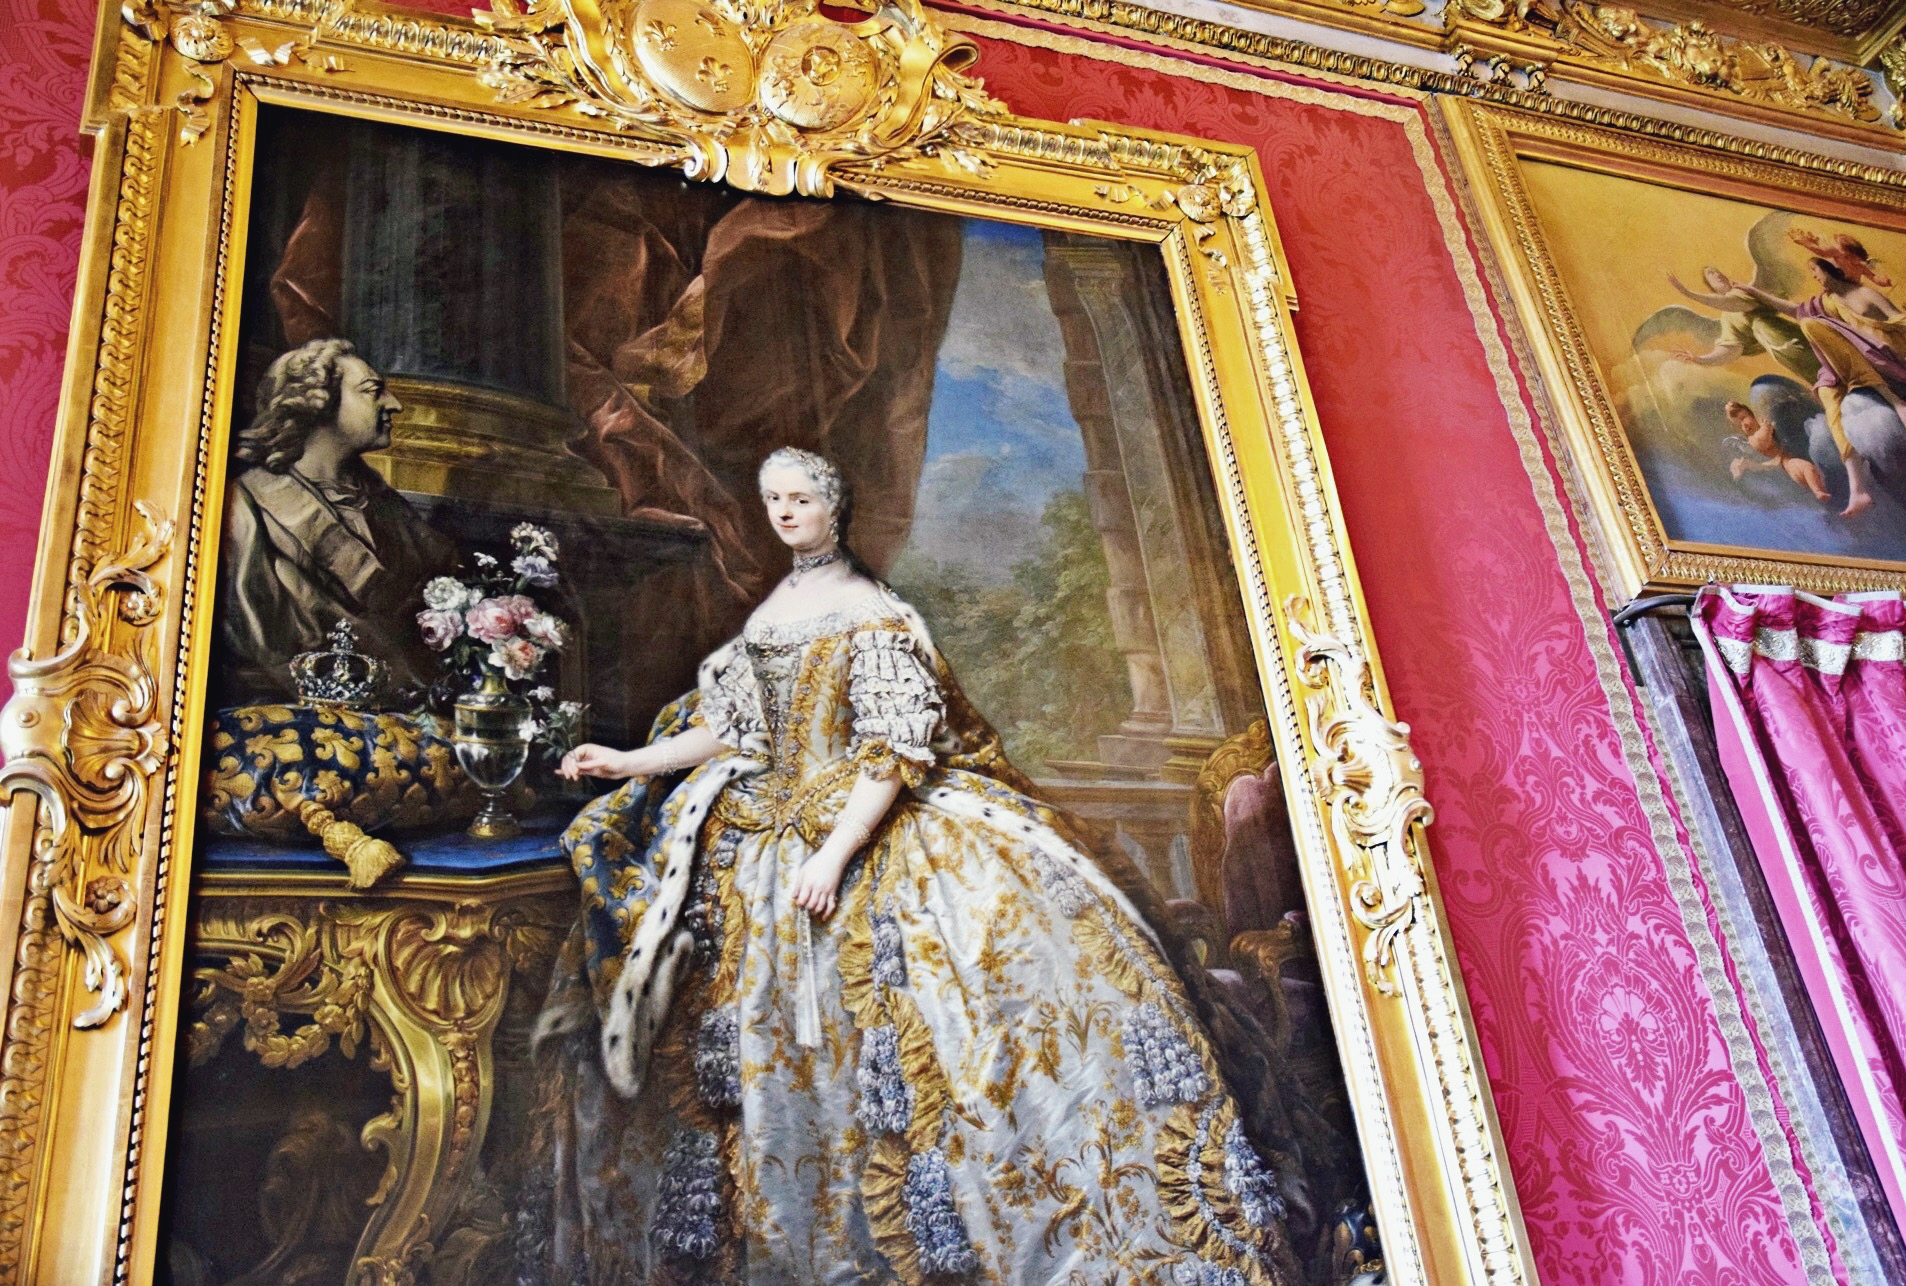 Marie Antoinette Portrait // Welcome To Versailles // Paris France Travel Diary // Pink Chanel Tweed Jacket // Chanel Pink and Beige Pleated Dress // Gold Gucci Loafers // Chanel Black Classic Flap Bag // Pearl Round Chanel Sunglasses // Los Angeles Fashion Blogger Daphne Blunt: To Style, With Love